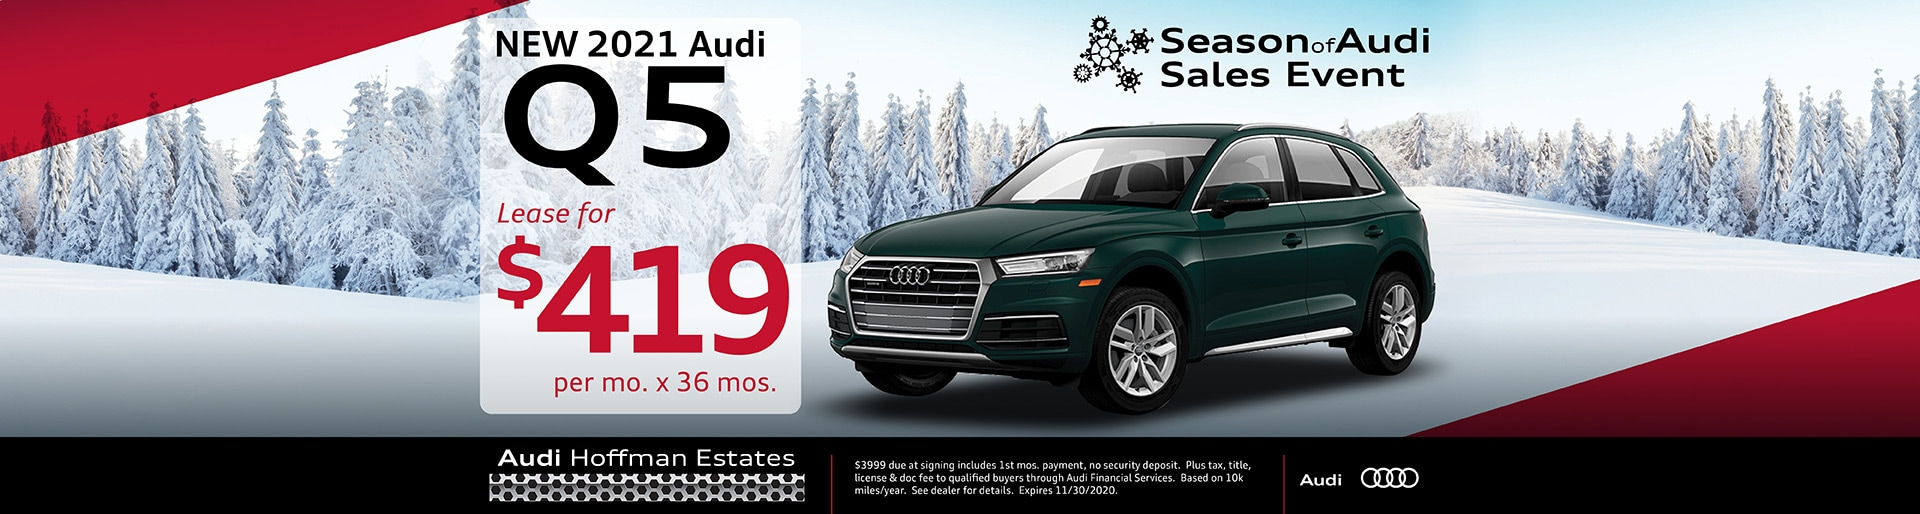 2021 Audi Q5 lease offer, $419/mo for 36 months | Hoffman Estates, IL